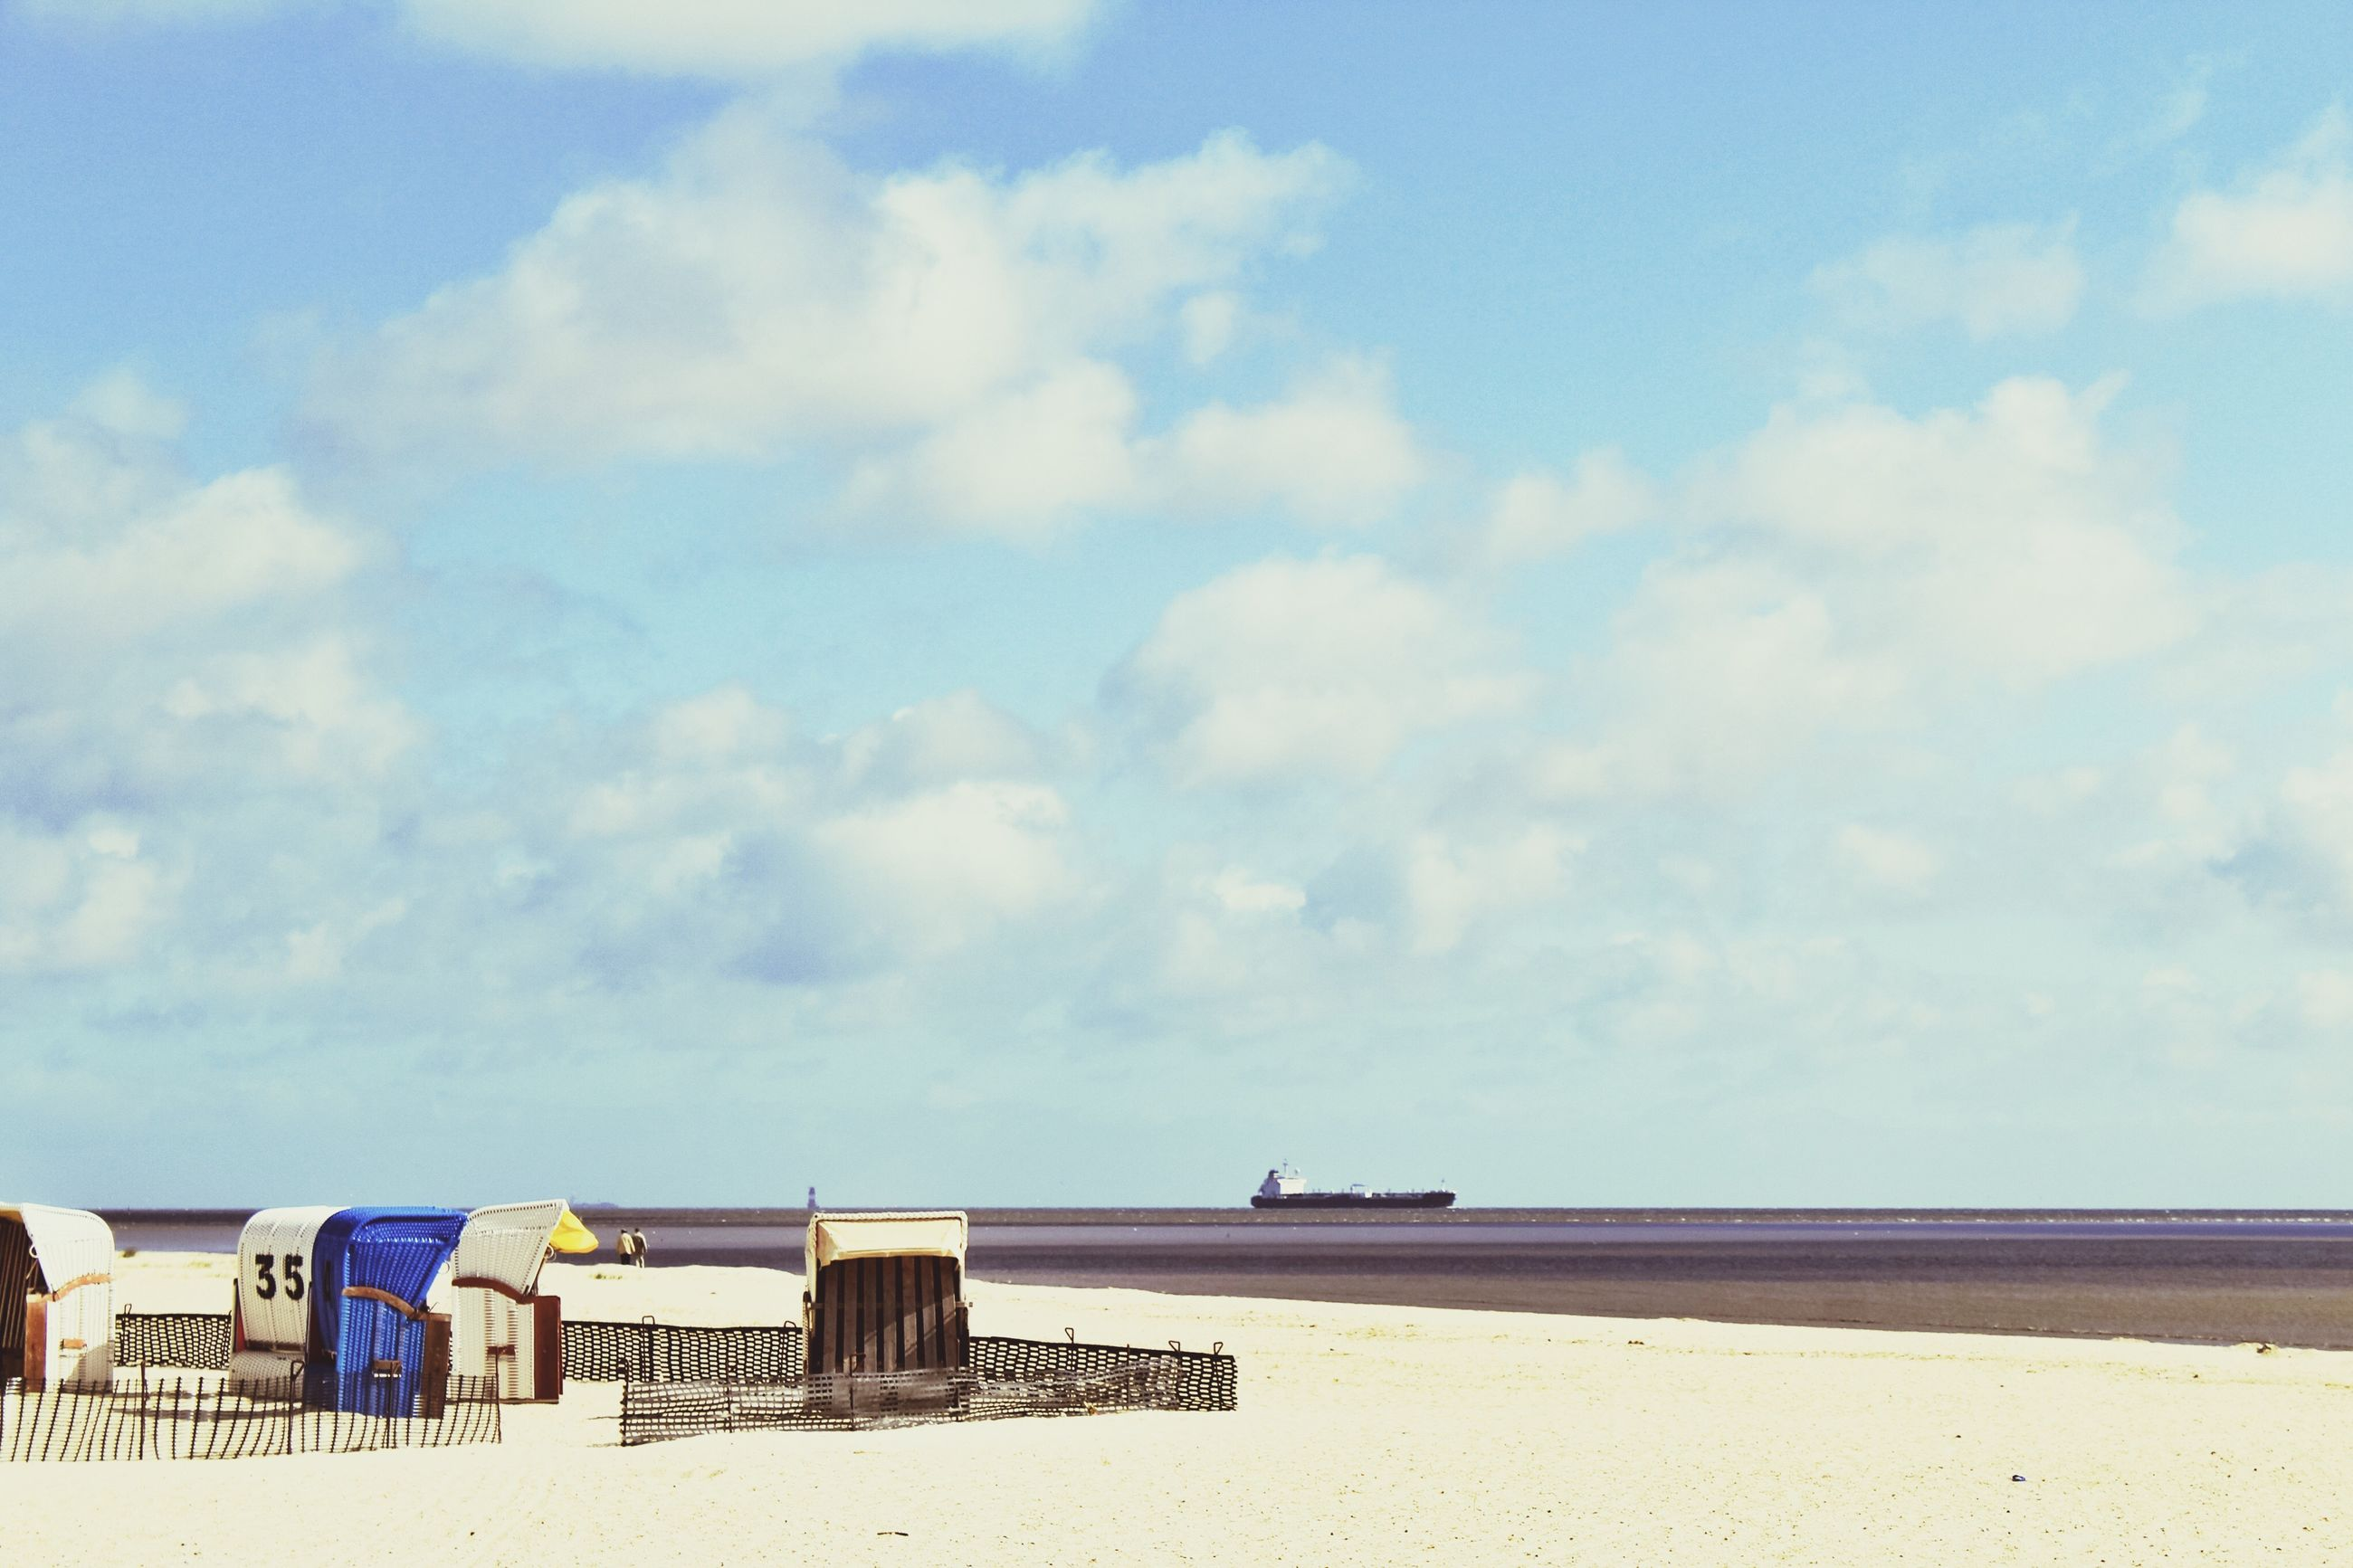 sea, beach, sky, water, horizon over water, sand, shore, tranquility, tranquil scene, scenics, beauty in nature, nature, cloud - sky, blue, cloud, day, built structure, outdoors, idyllic, calm